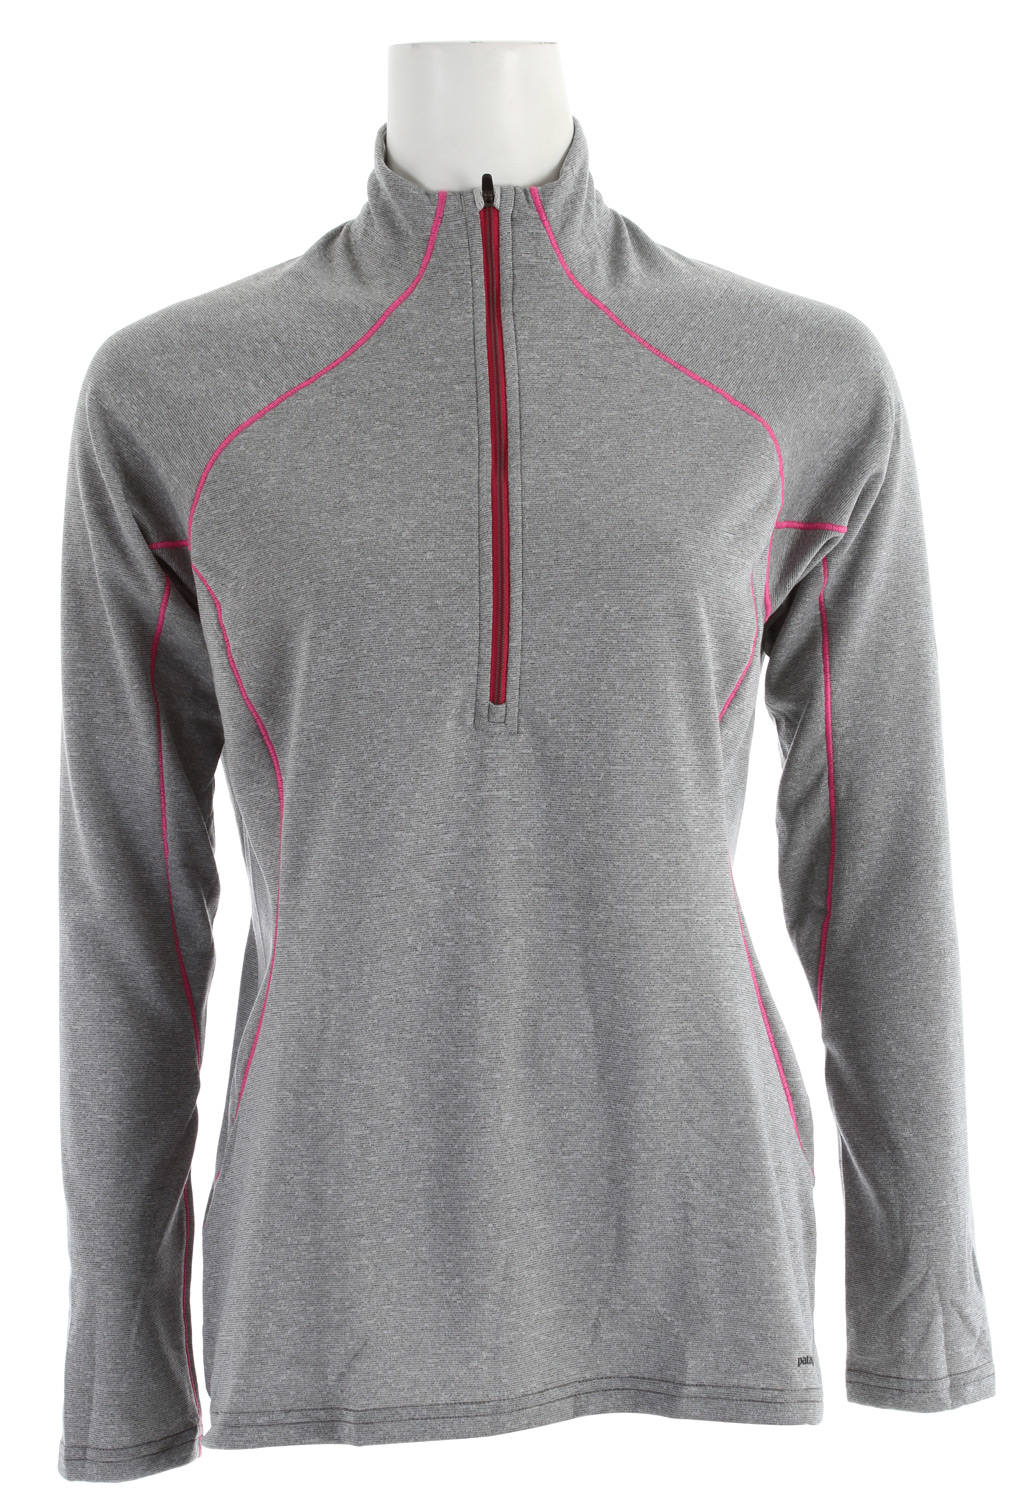 Our most versatile synthetic baselayer keeps you dry and warmKey Features of the Patagonia Capilene 3 Midweight Zip-Neck Baselayer Top Narwhal Grey - Fog Xdye: Stretchy, double-weave fabric wicks extremely well Durable smooth jersey face slides easily beneath layers Fabric is brushed for warmth, softness and compressibility; provides excellent insulation and breathability Zip-neck for easy climate control is backed by kissing welts for low-bulk comfort next to skin Raglan sleeves and underarm panels placed strategically to provide full range of motion and comfort under layers Straight hem; cut long enough to tuck in Machine-wash cold, tumble dry at low temperature Slim fit (7.7 oz) 218 g fabric: Solids: 5.4-oz Polartec Power Dry 100% polyester double knit (65% recycled). Heathers: 5.4-oz Polartec Power Dry 100% polyester double knit (51% recycled), both with Gladiodor odor control for the garment - $59.00